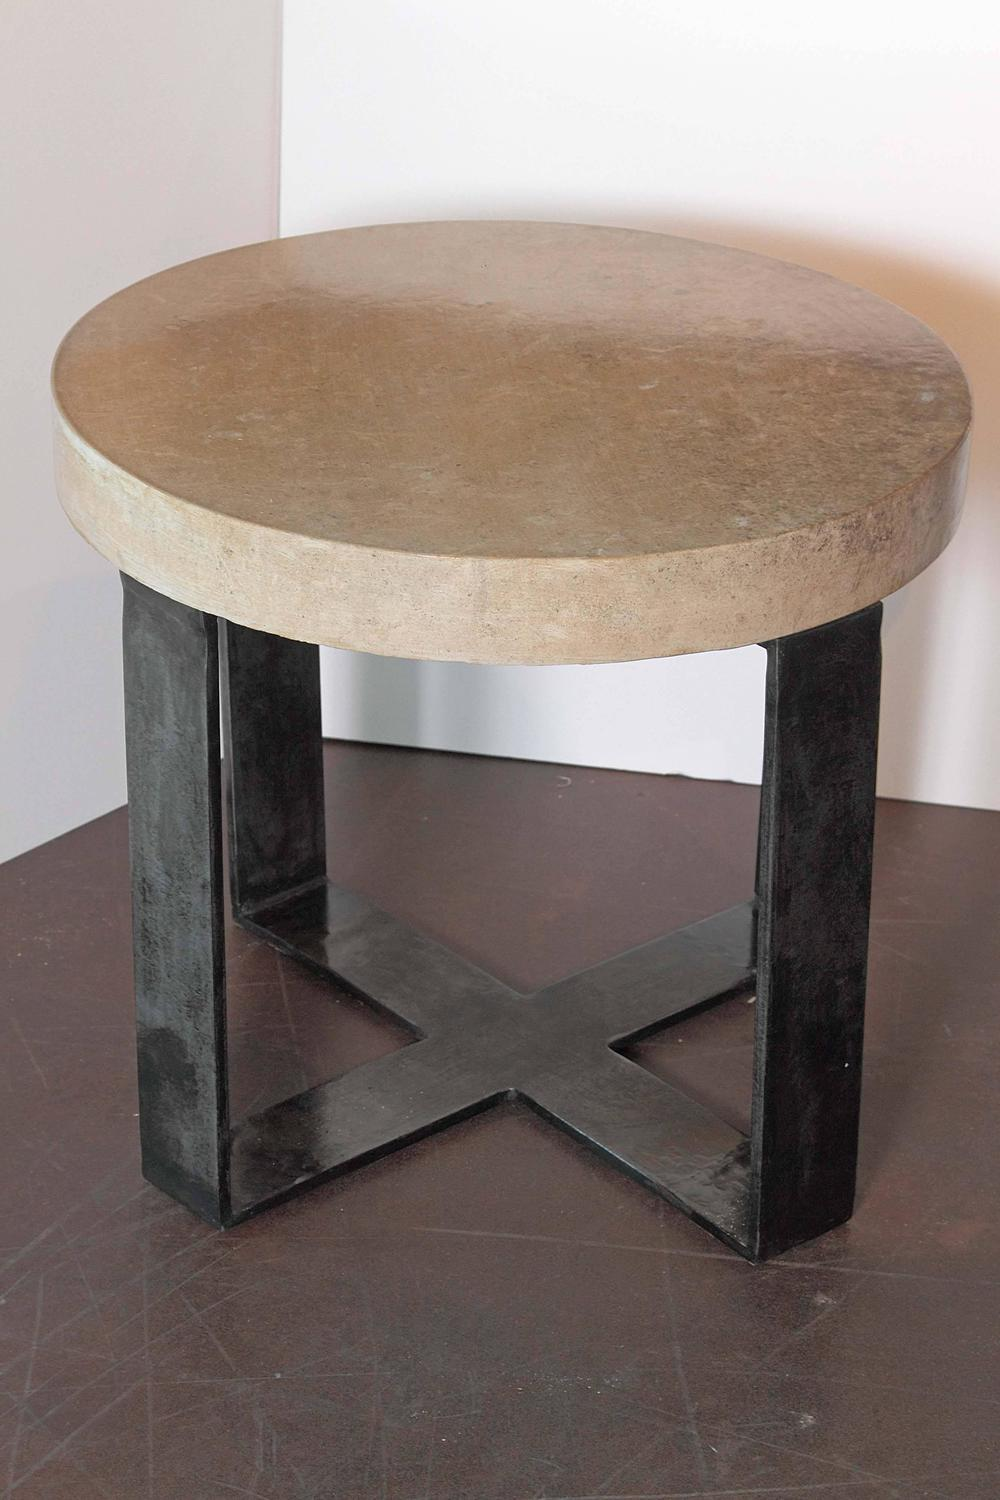 Taupe antique limestone x base end tables for sale at 1stdibs - Table basse taupe ...